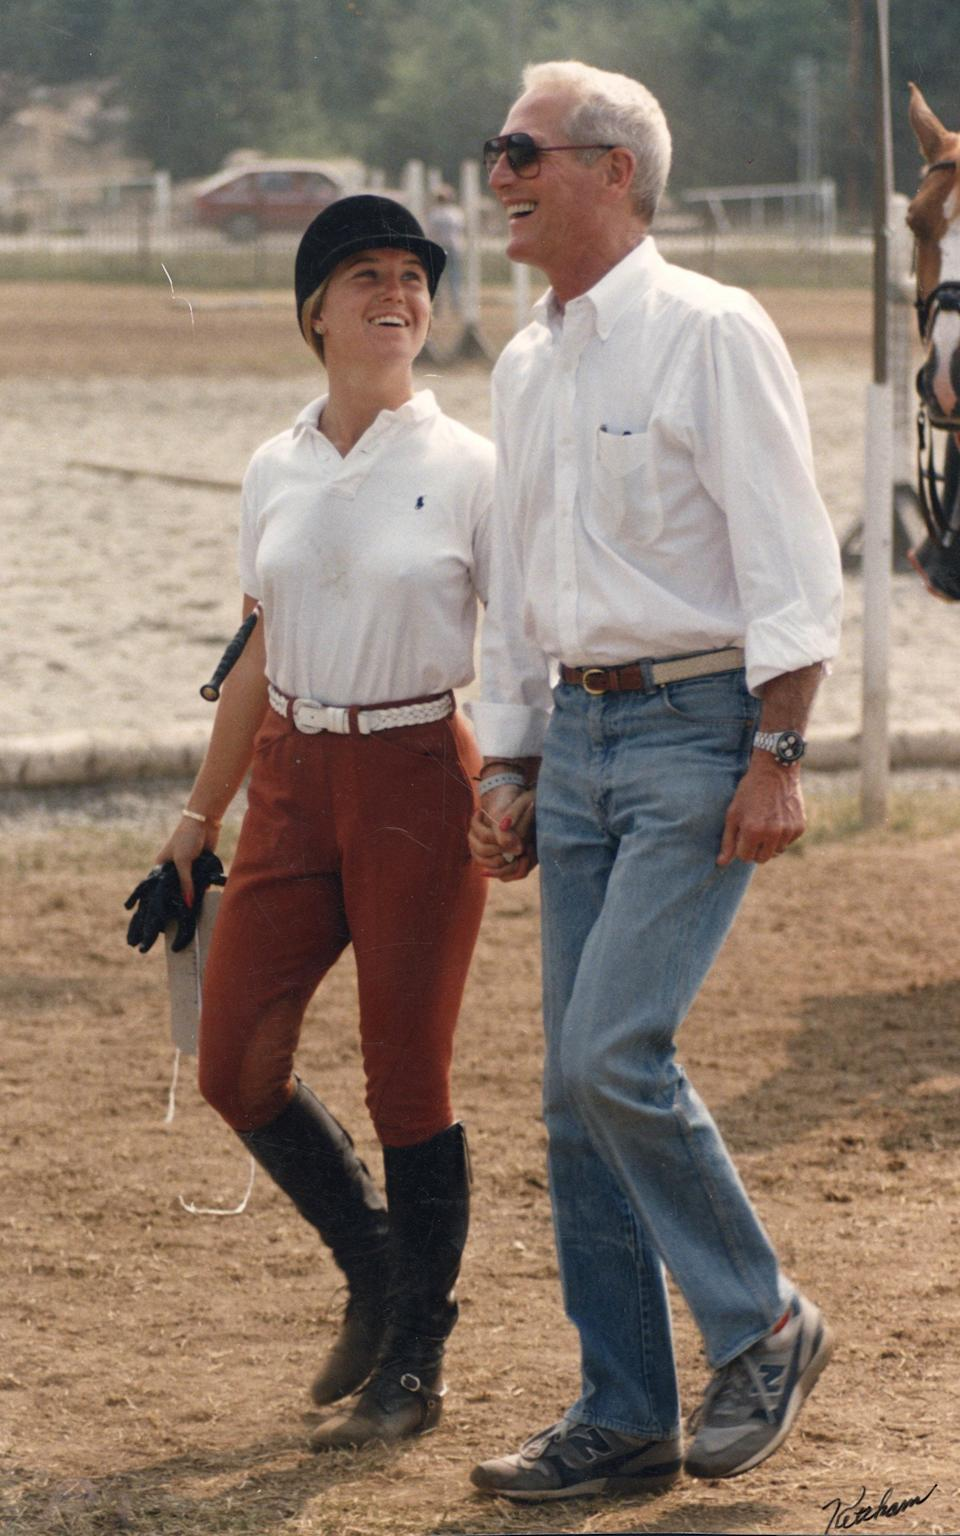 Clea and Paul Newman, - Courtesy of Clea Newman